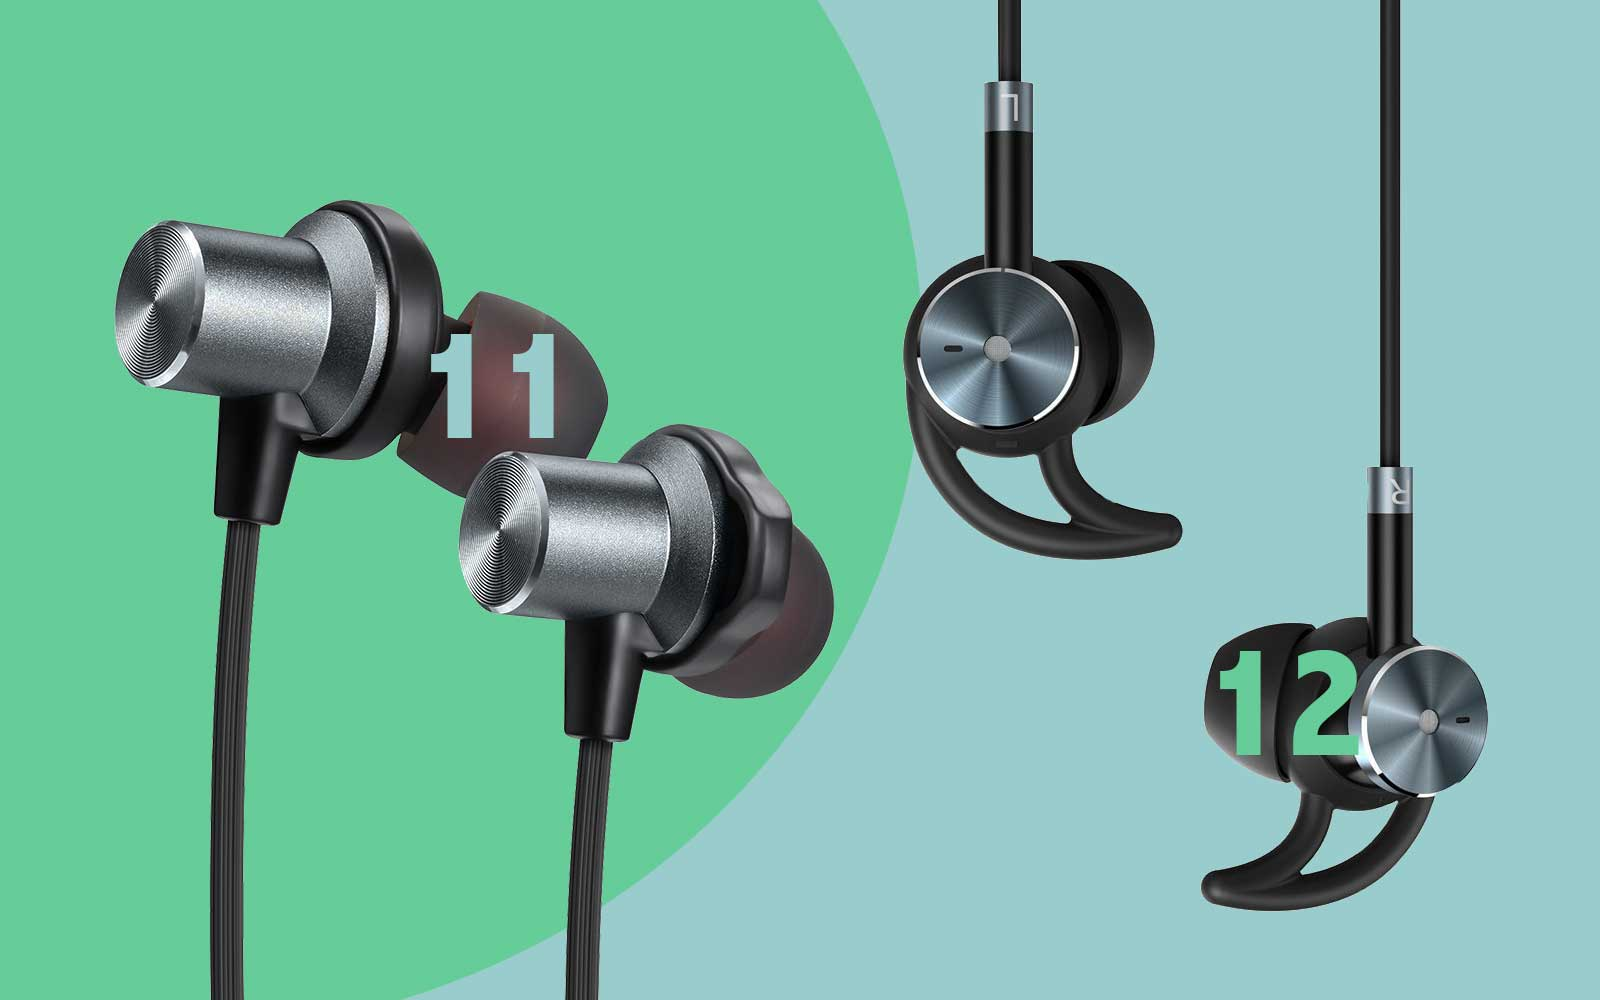 Cheap noise-canceling headphones from Tesson and TaoTronics